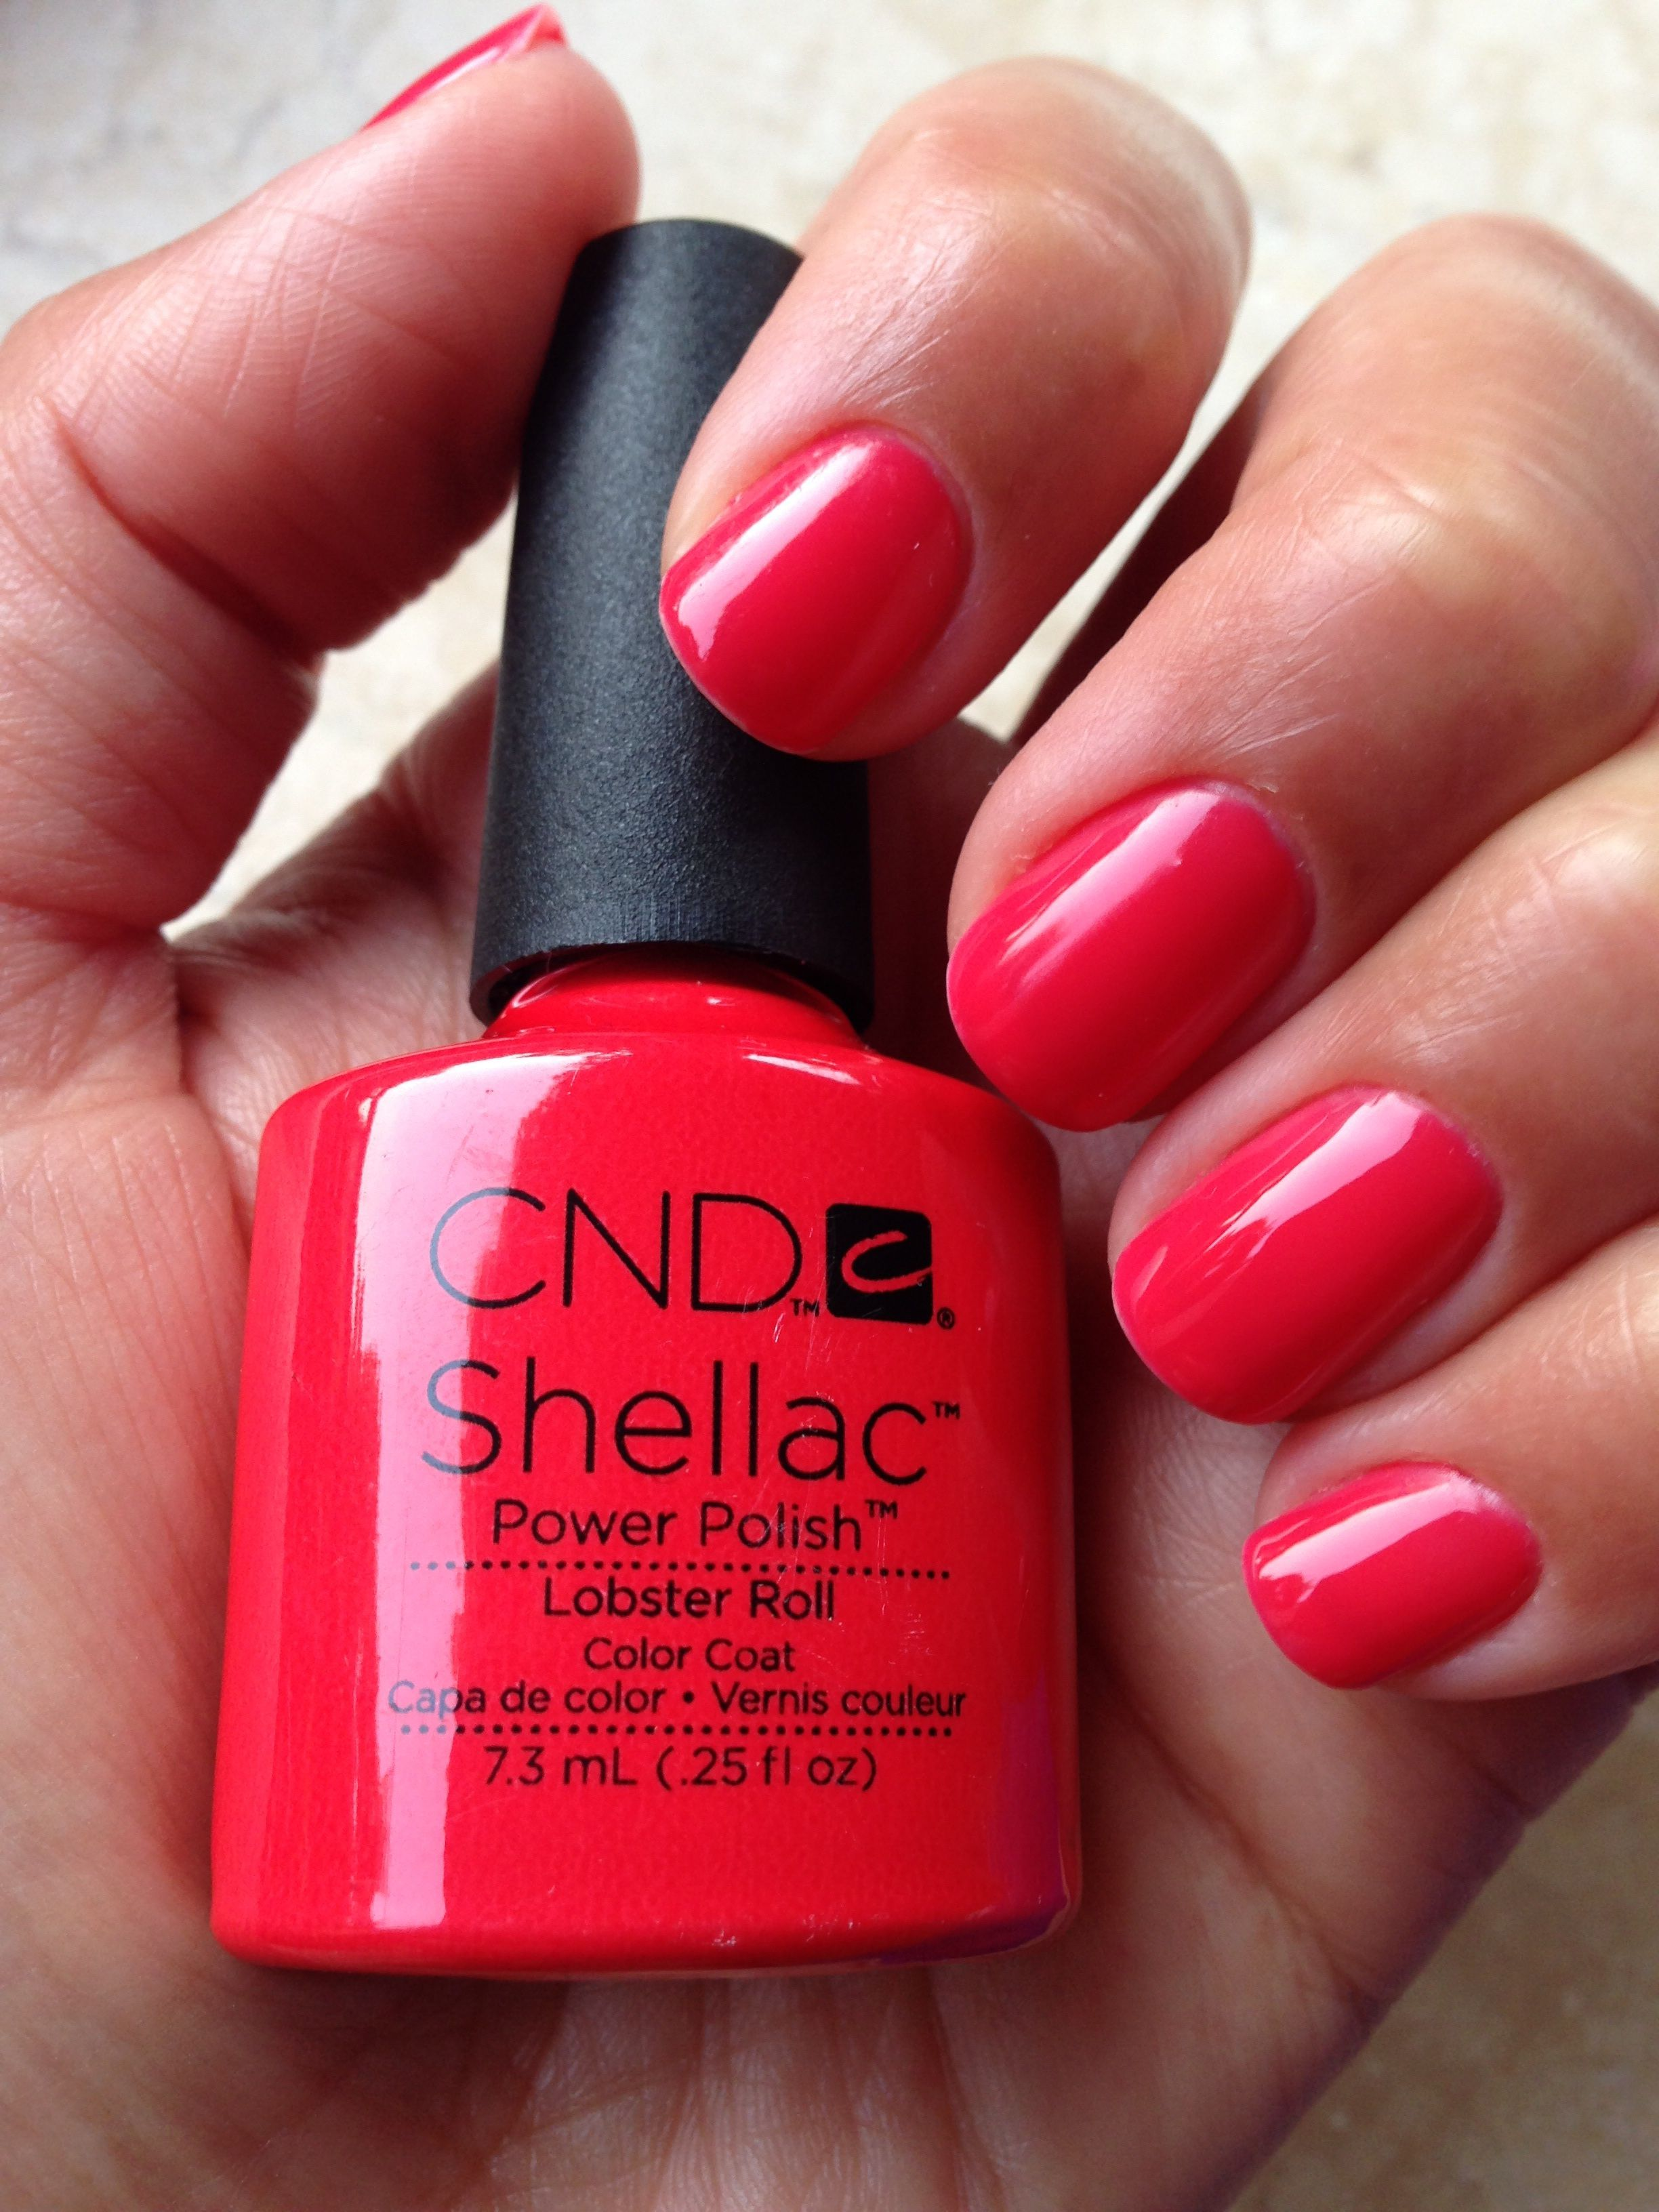 Who made the shellac is it true that after his nails are in terrible condition 91